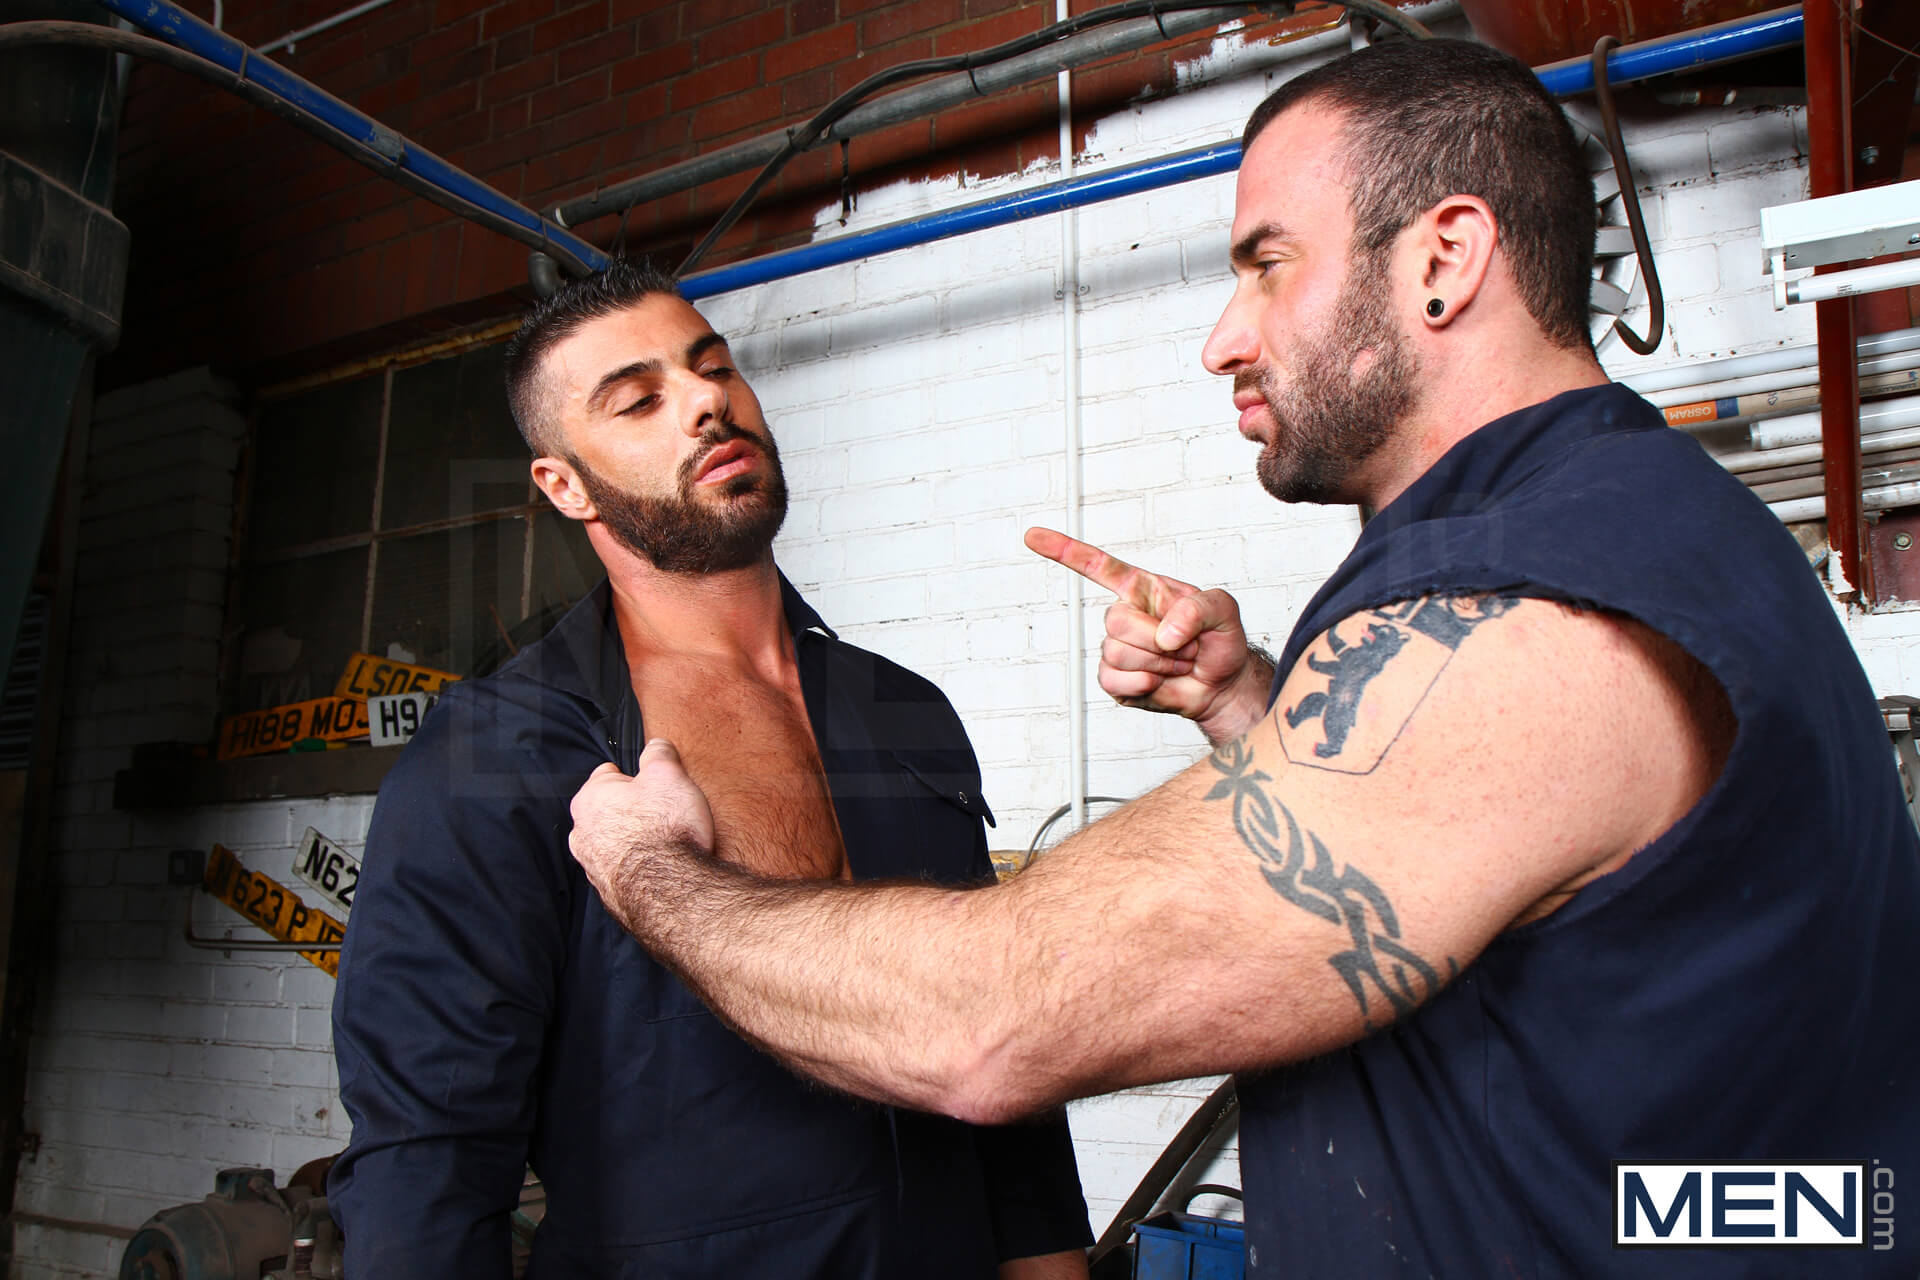 Spencer Reed fuck Alex Marte gay hot daddy dude men porn Late for Work